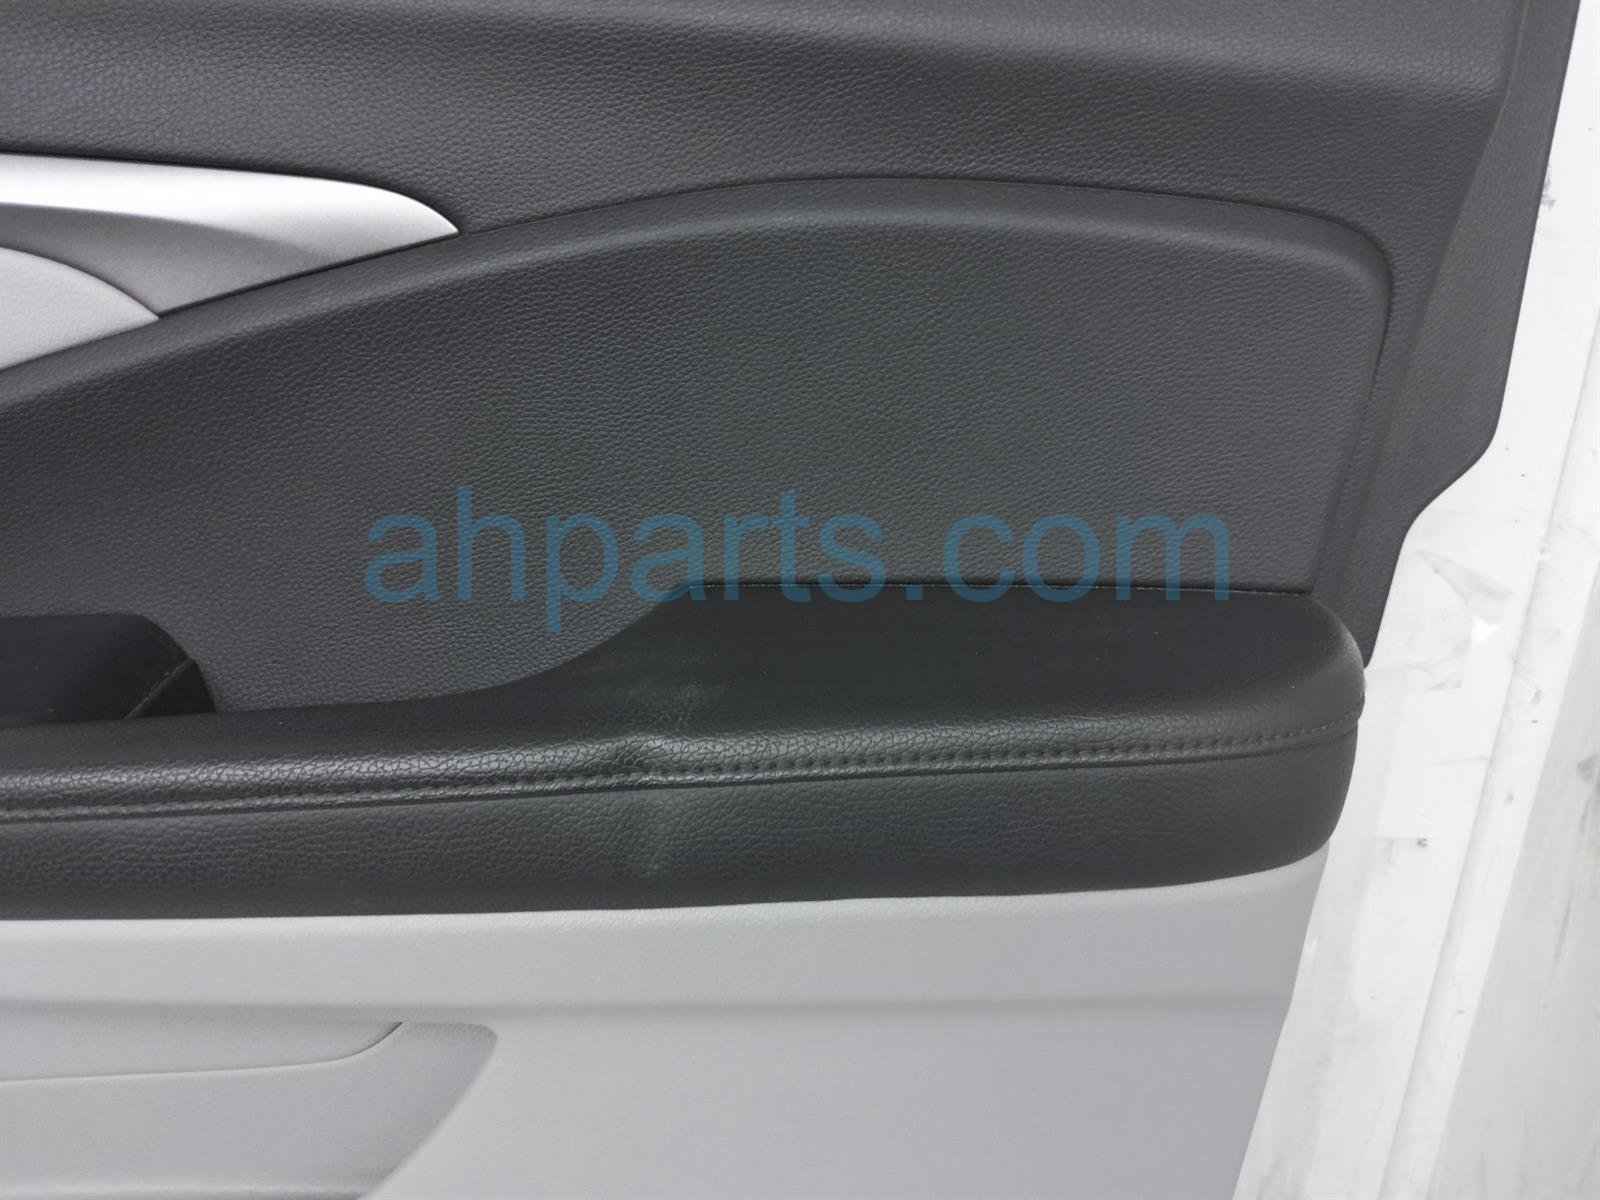 2019 Honda Pilot Trim / Liner Front Passenger Interior Door Panel   Grey 83501 TG7 A02ZC Replacement